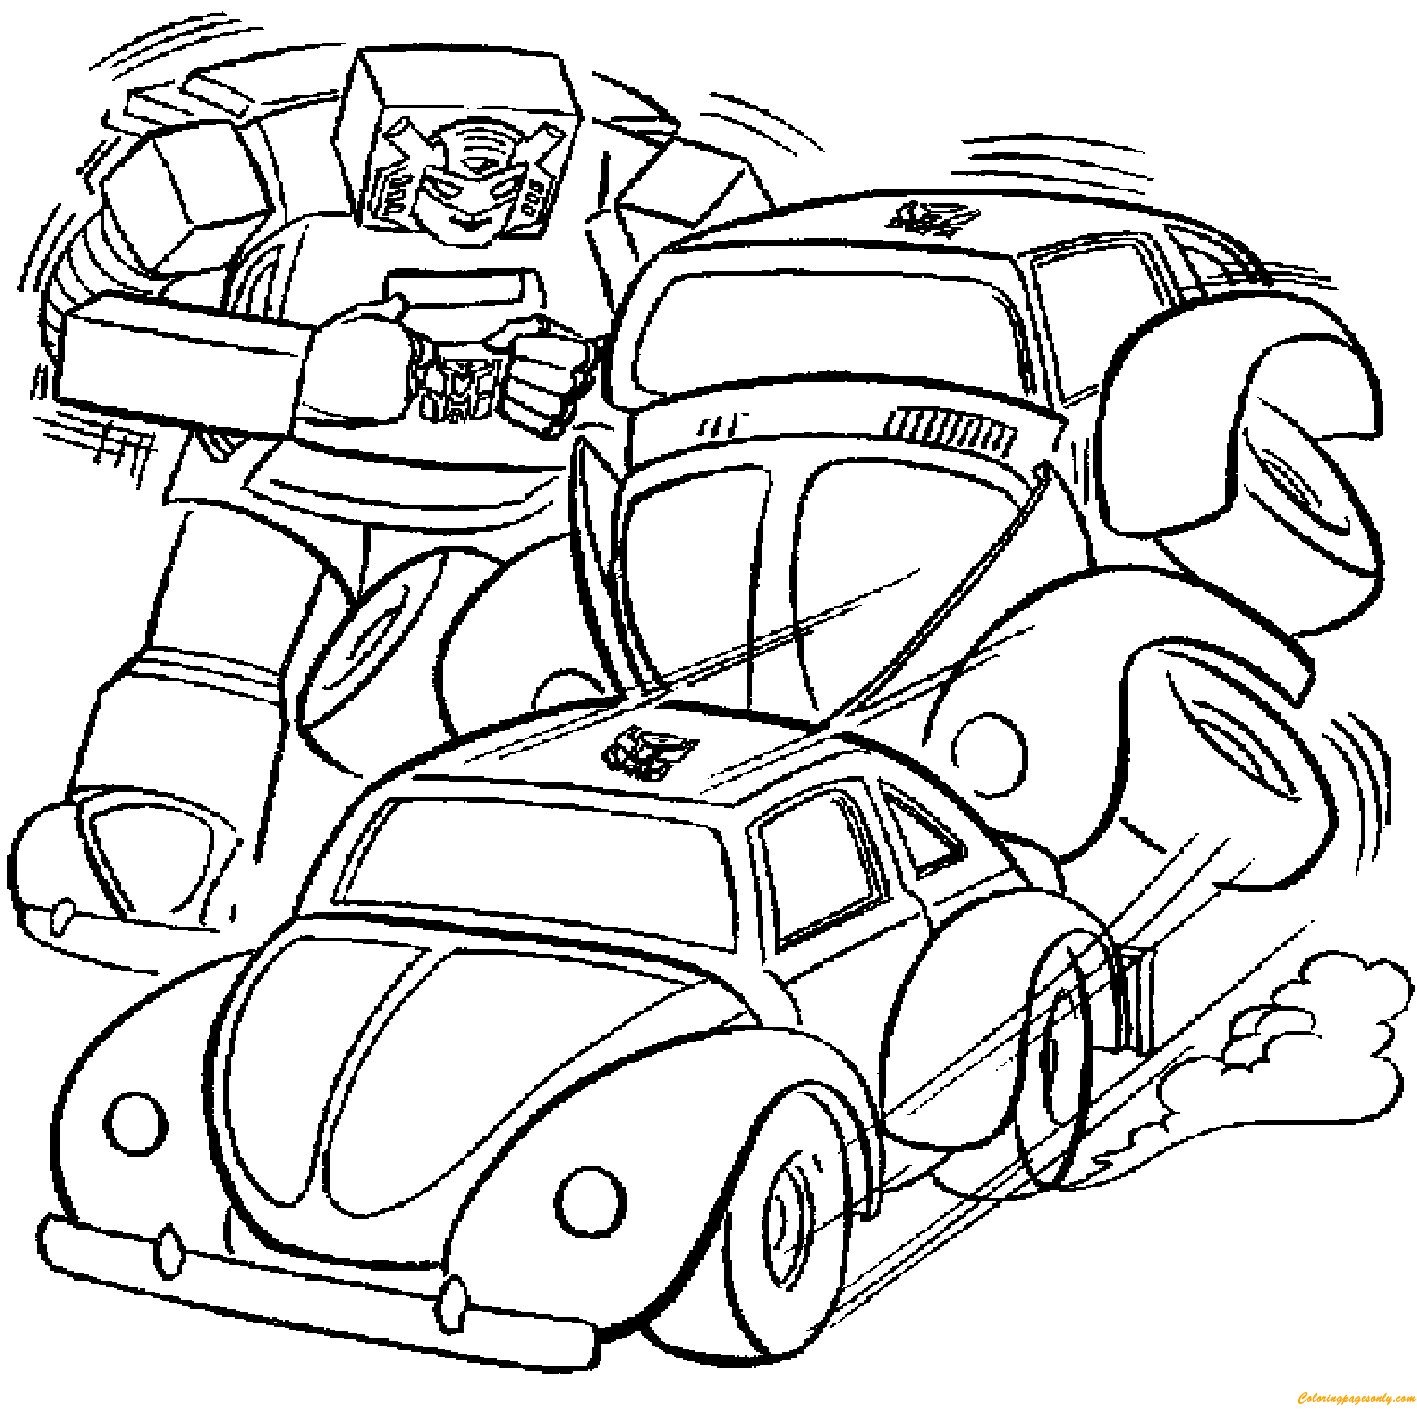 Transformer car coloring pages